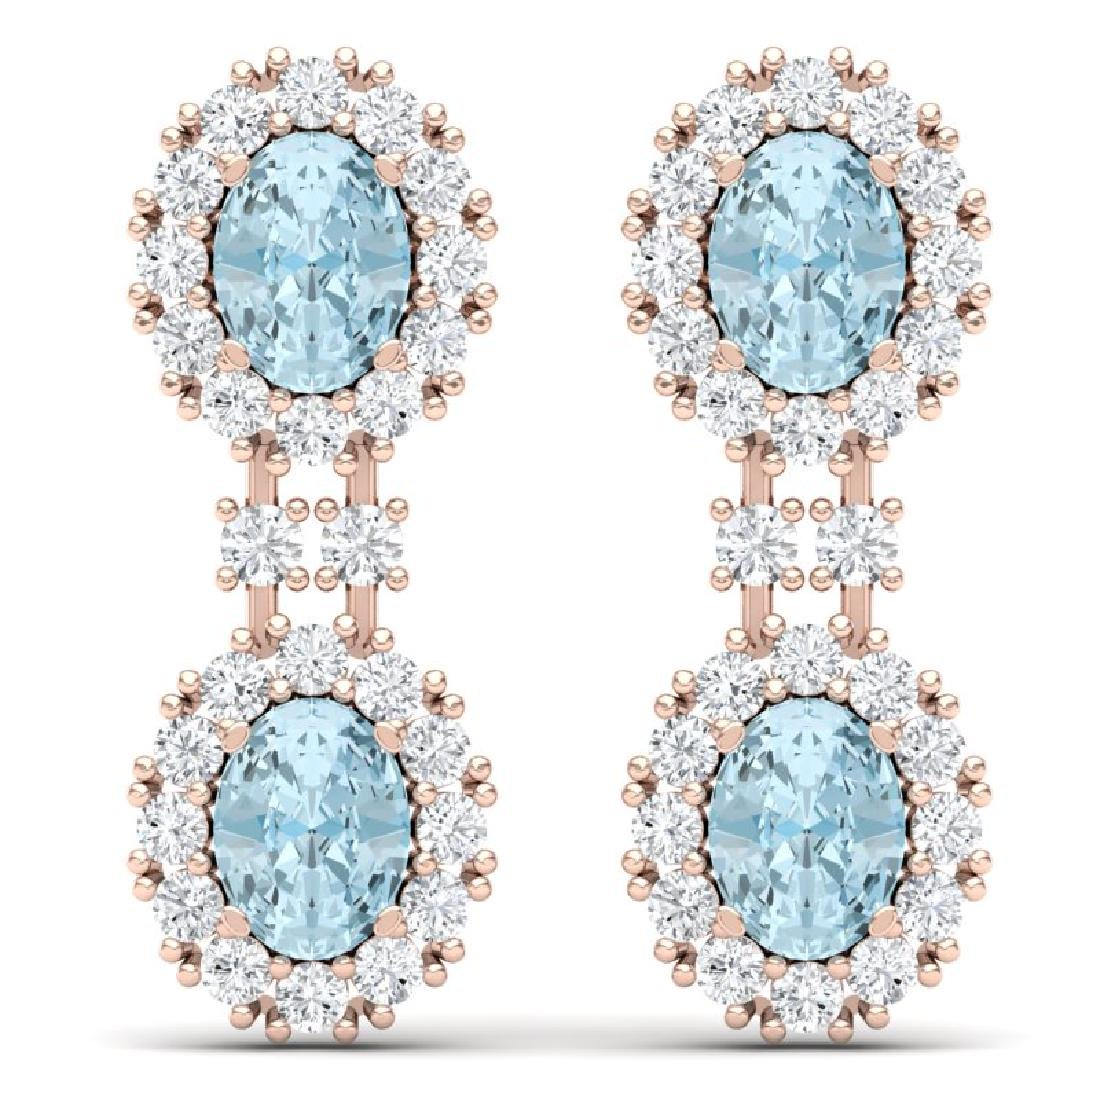 8.8 CTW Royalty Sky Topaz & VS Diamond Earrings 18K